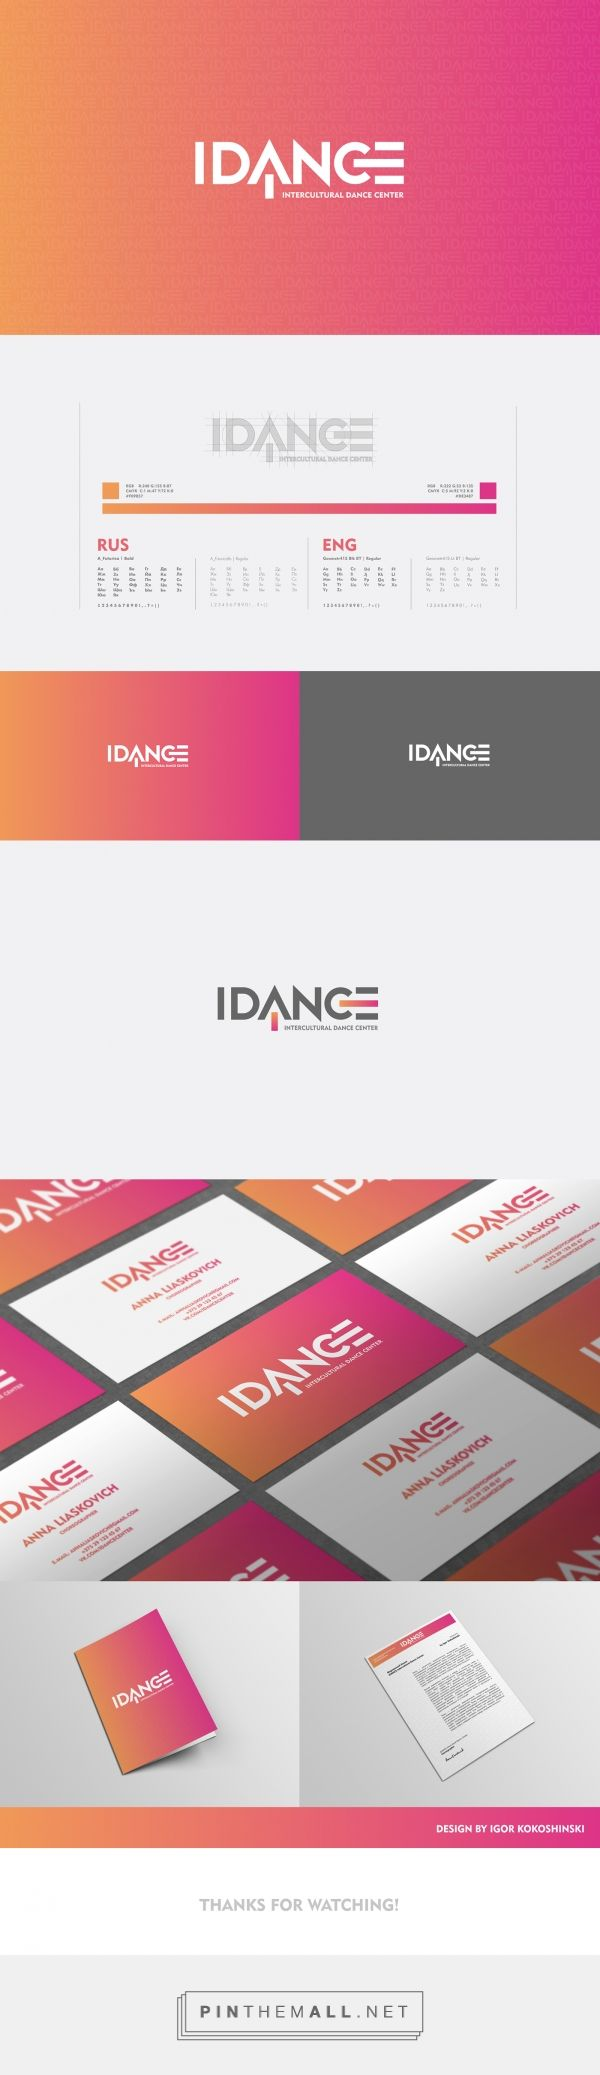 IDANCE Intercultural Dance Center on Behance - created via https://pinthemall.net